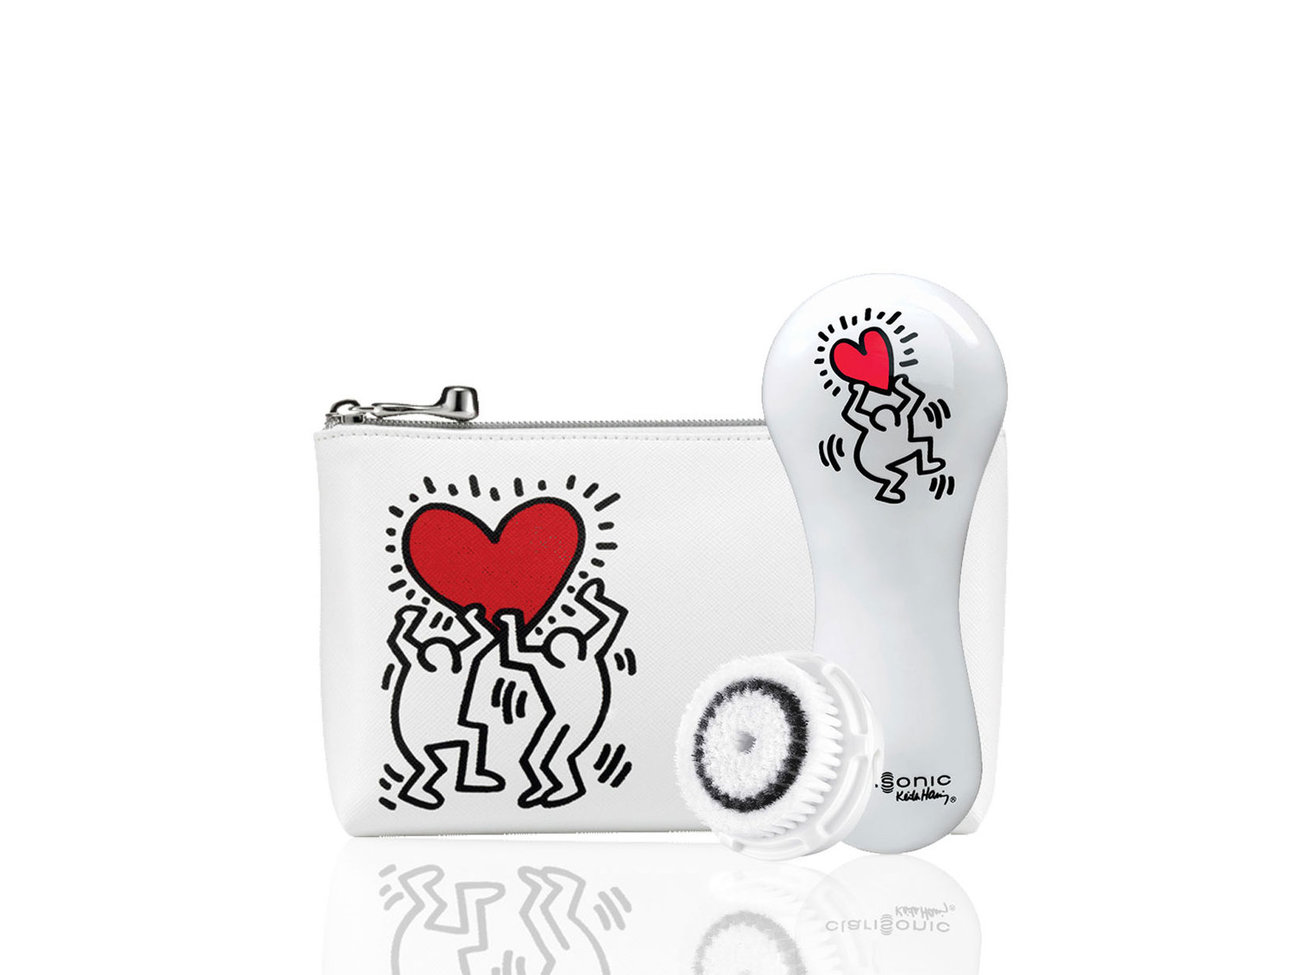 Beauty-Keith-Haring-Skin-Cleansing-Set-GG1115.jpg